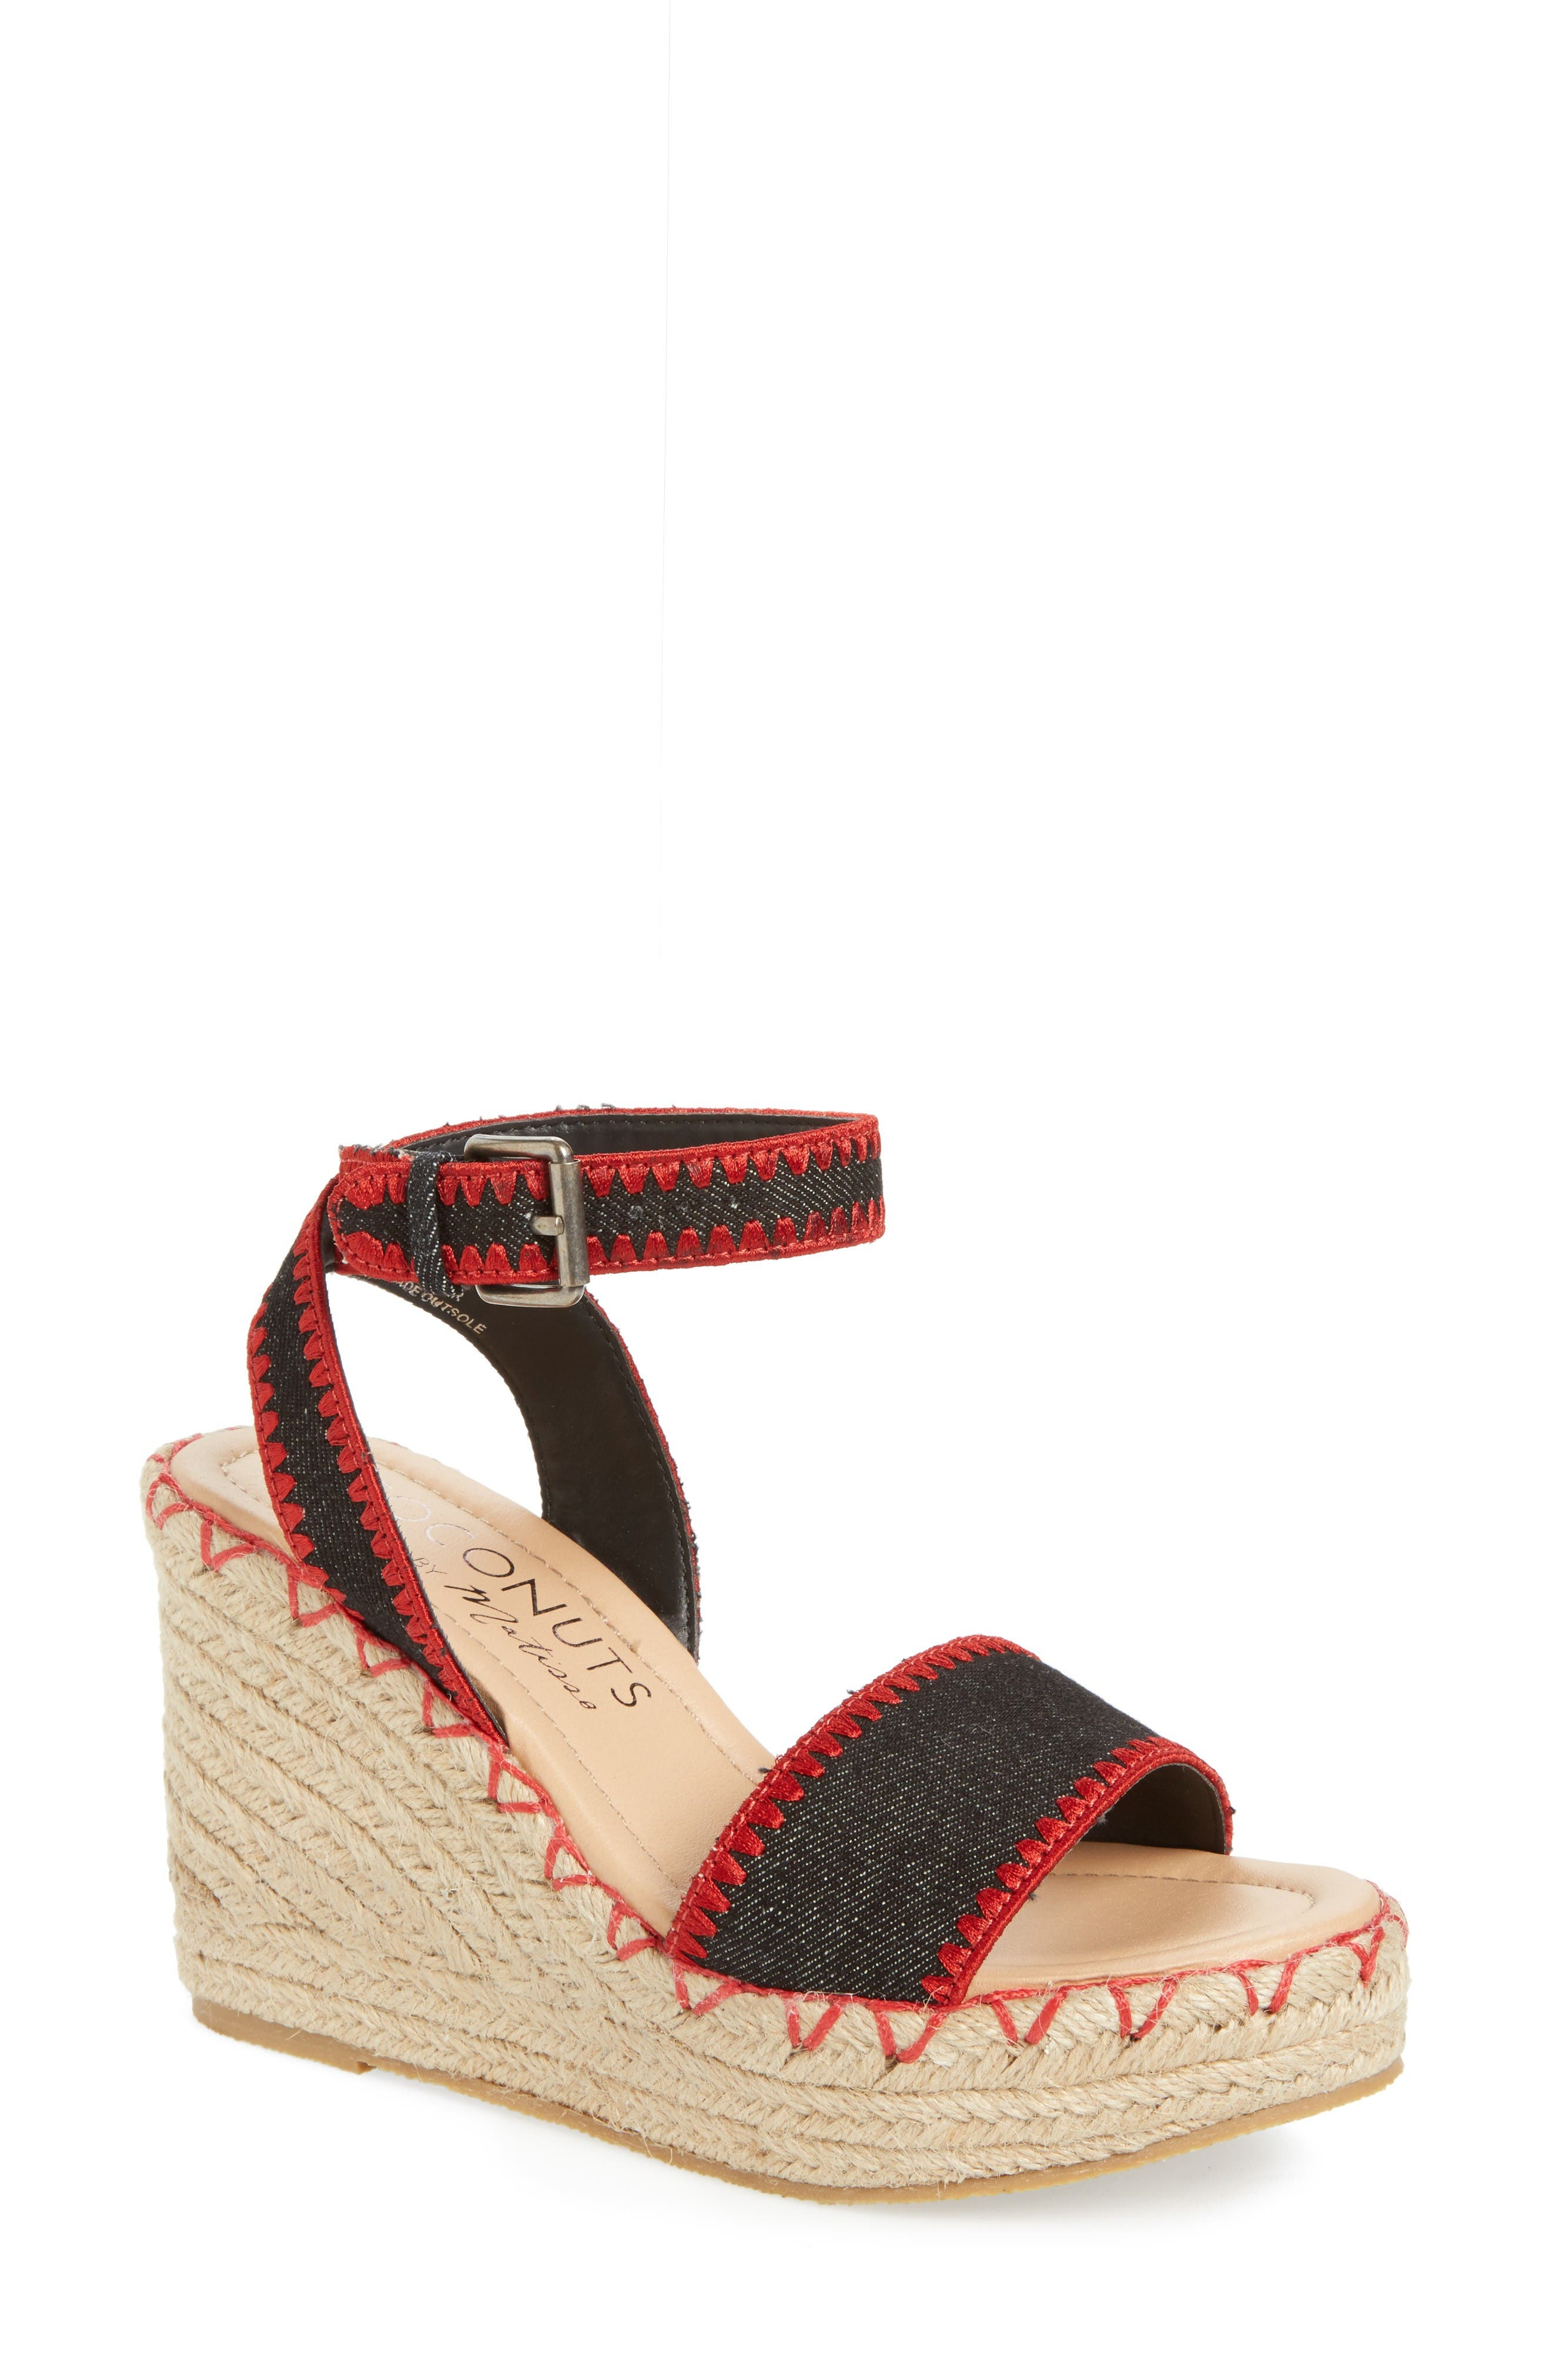 Coconuts by Matisse Frenchie Wedge Sandal,                         Main,                         color, Black Fabric